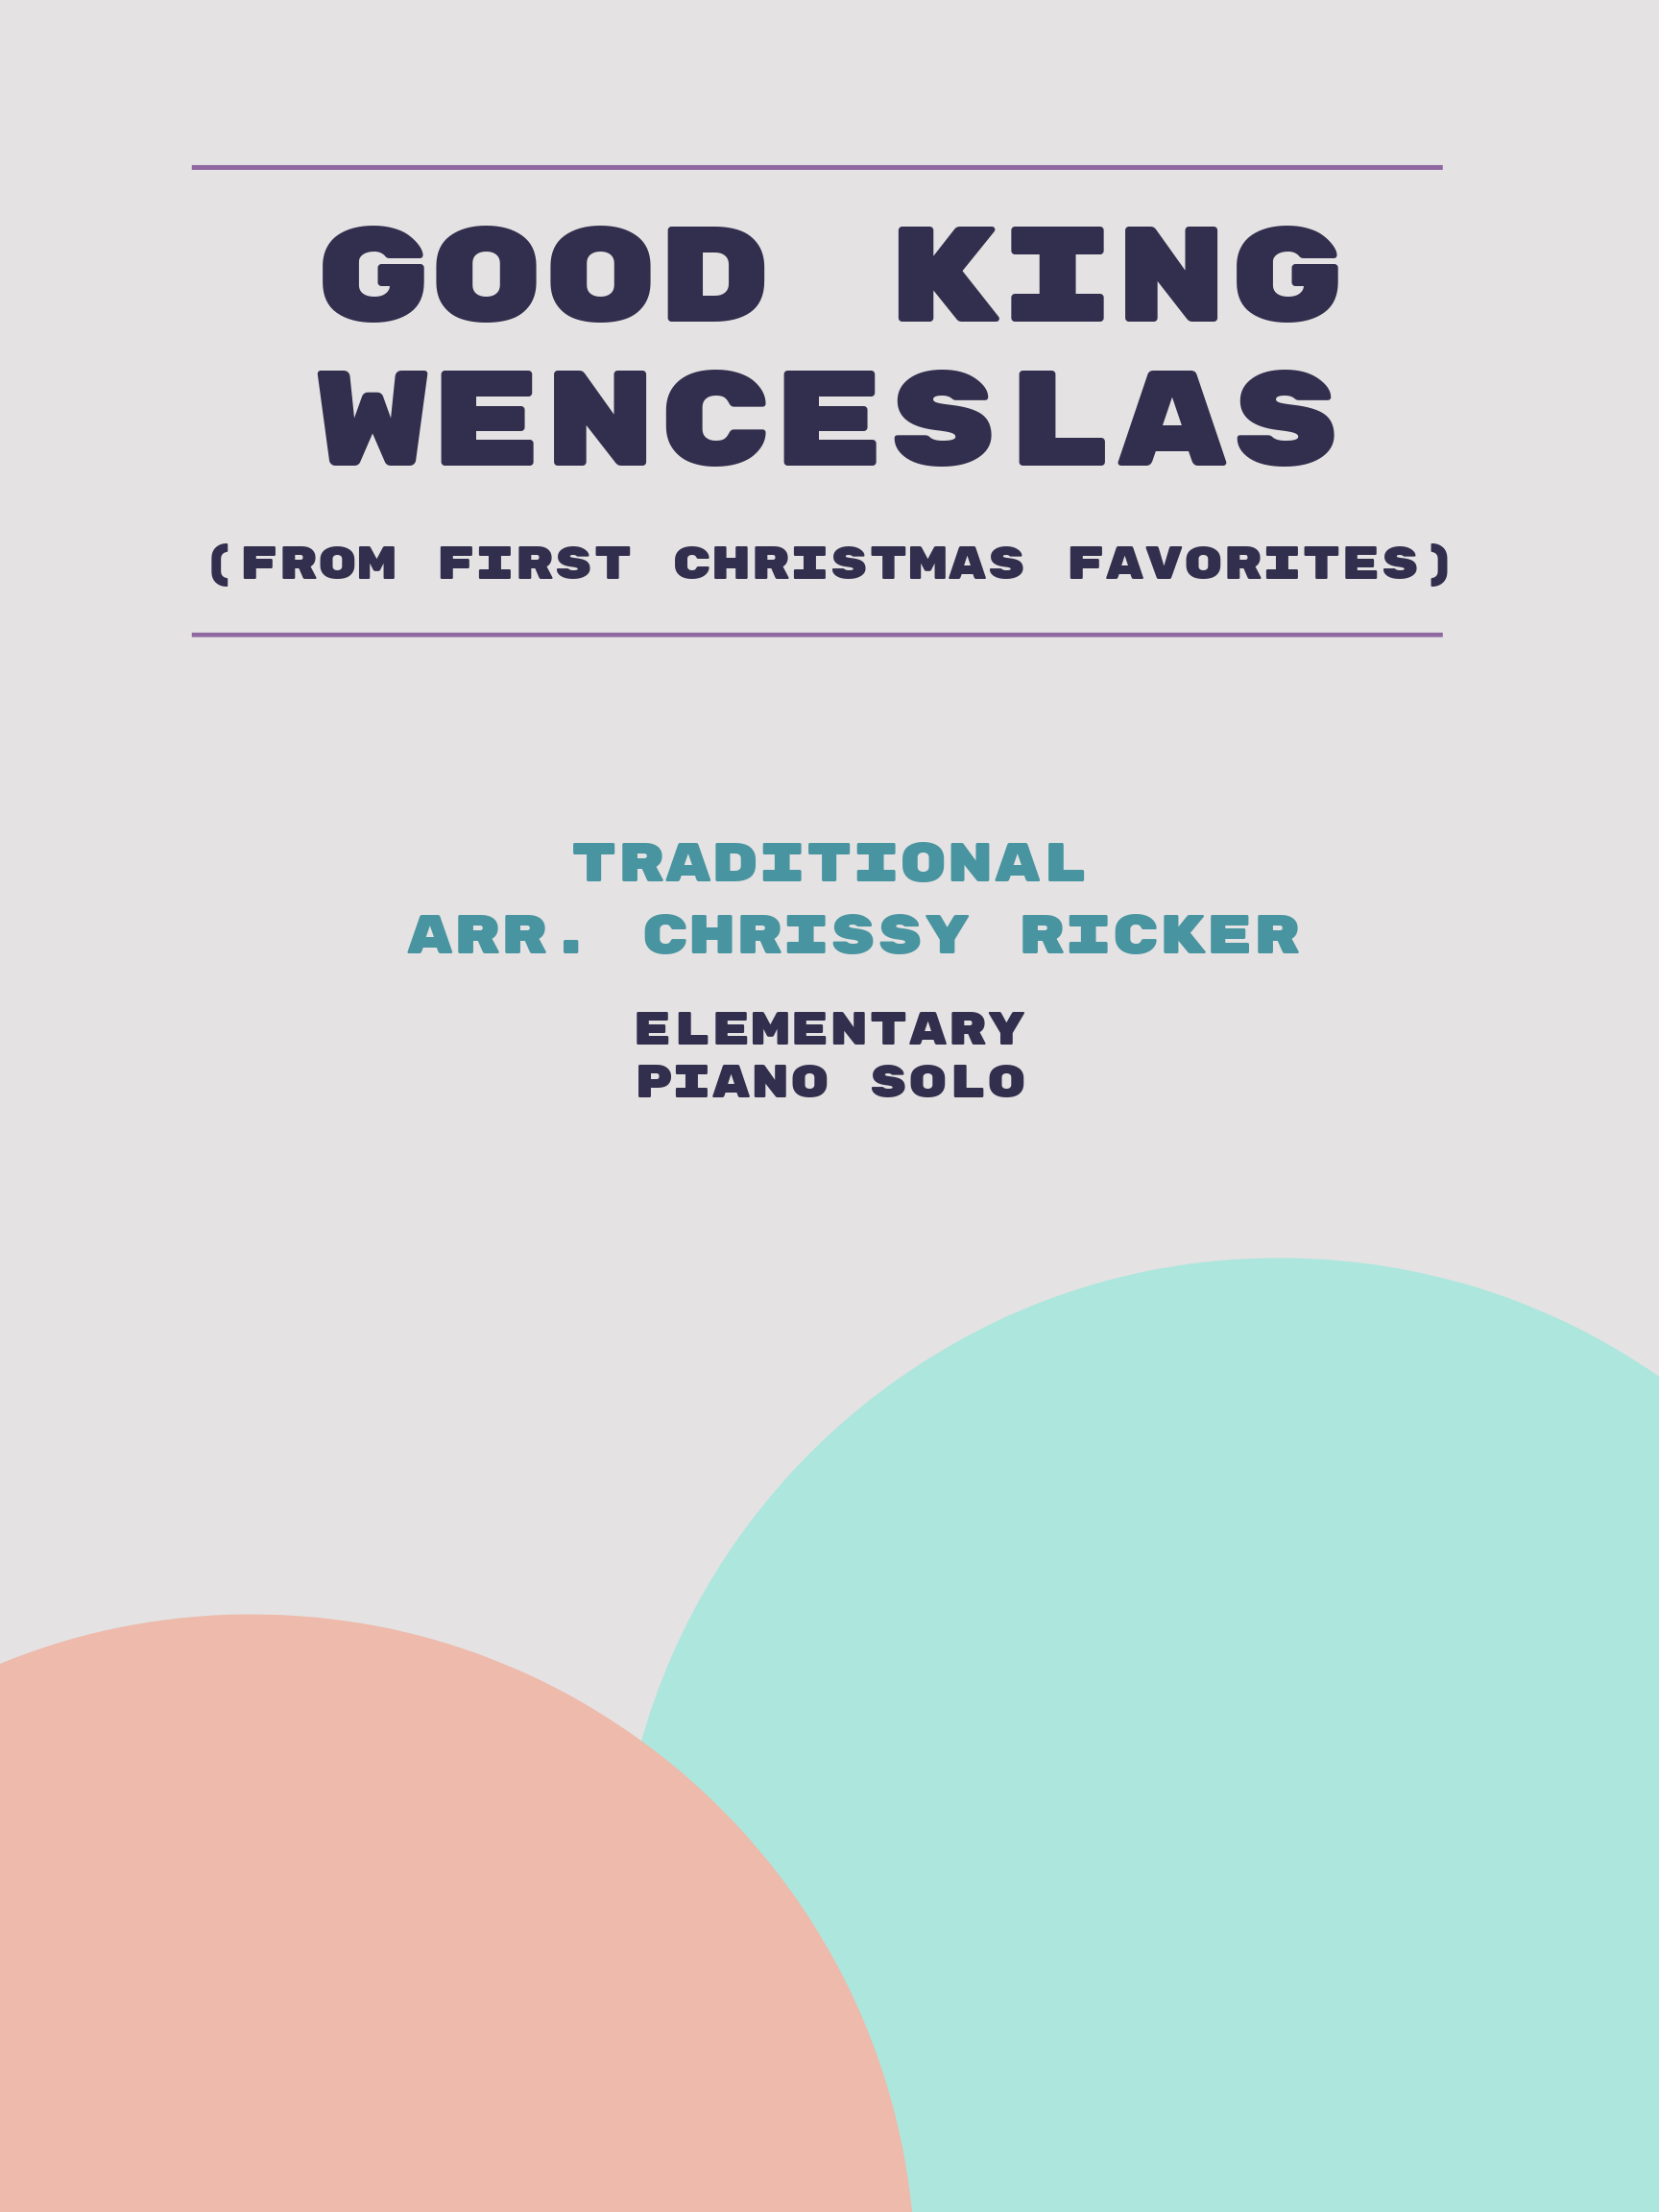 Good King Wenceslas by Traditional